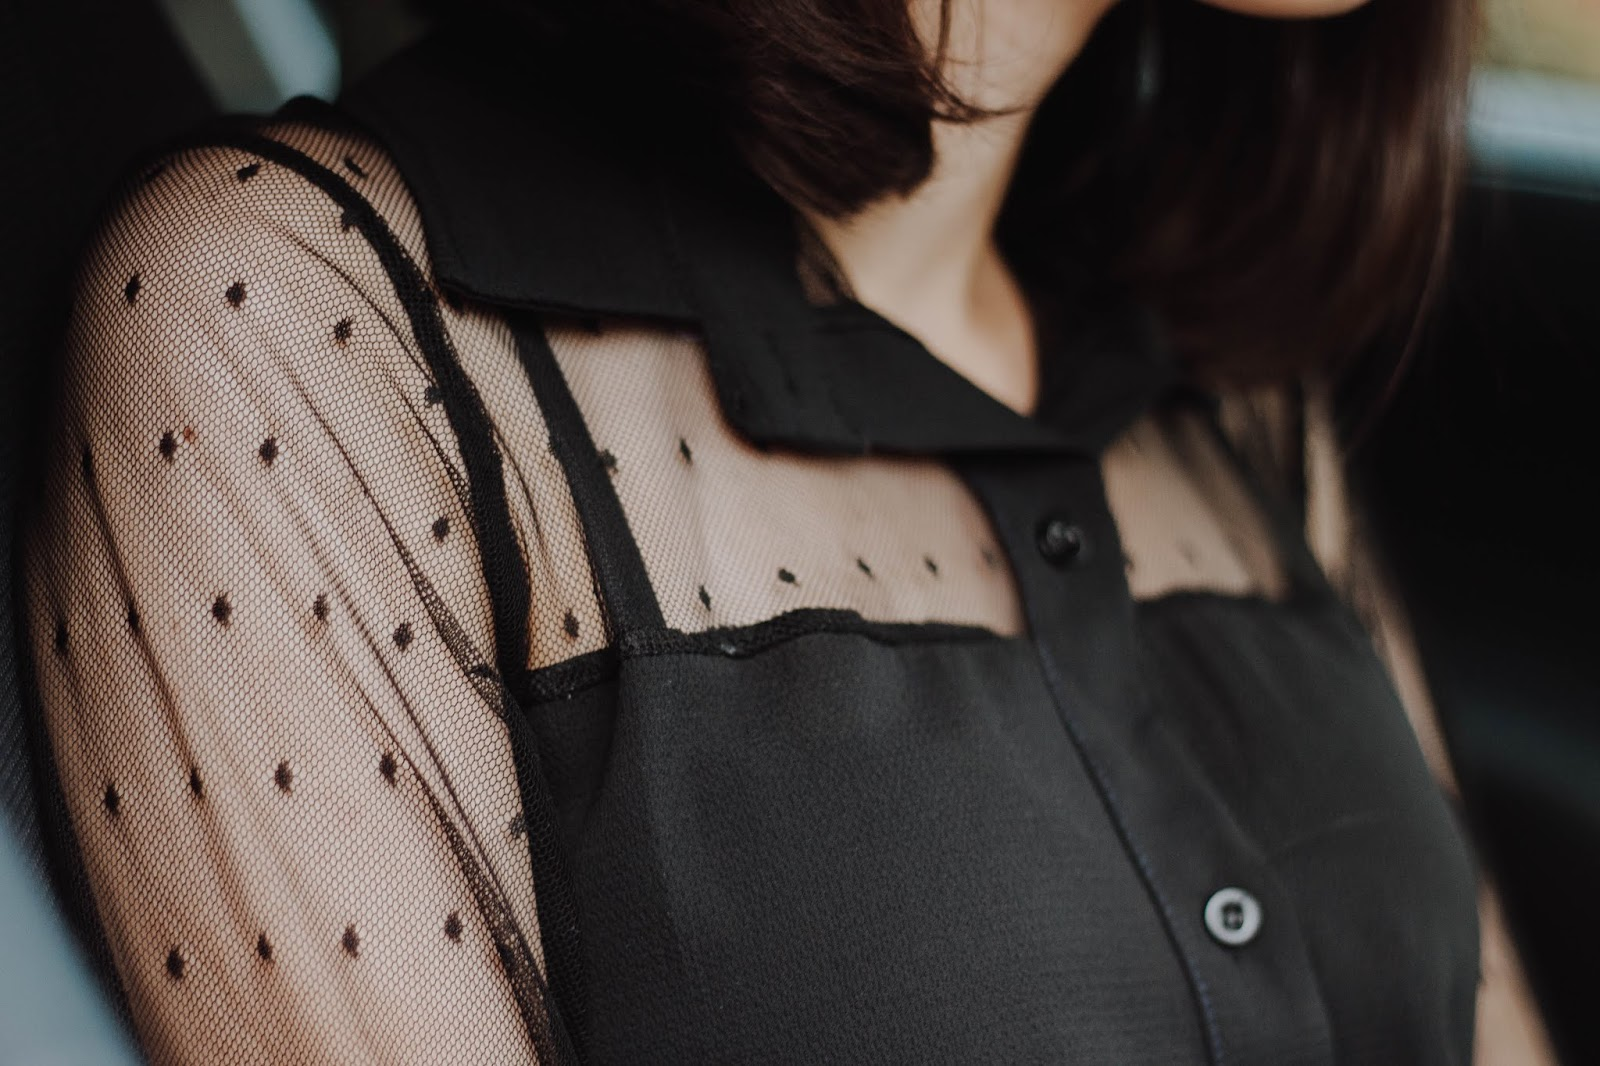 It seems that see through blouses are on the rise again and I, who lately don't really follow major trends, succumbed and ordered one from Femme Luxe. No need for words. It's delicate and, though transparent, it has its elegance (that is, I don't feel like it's too transparent).